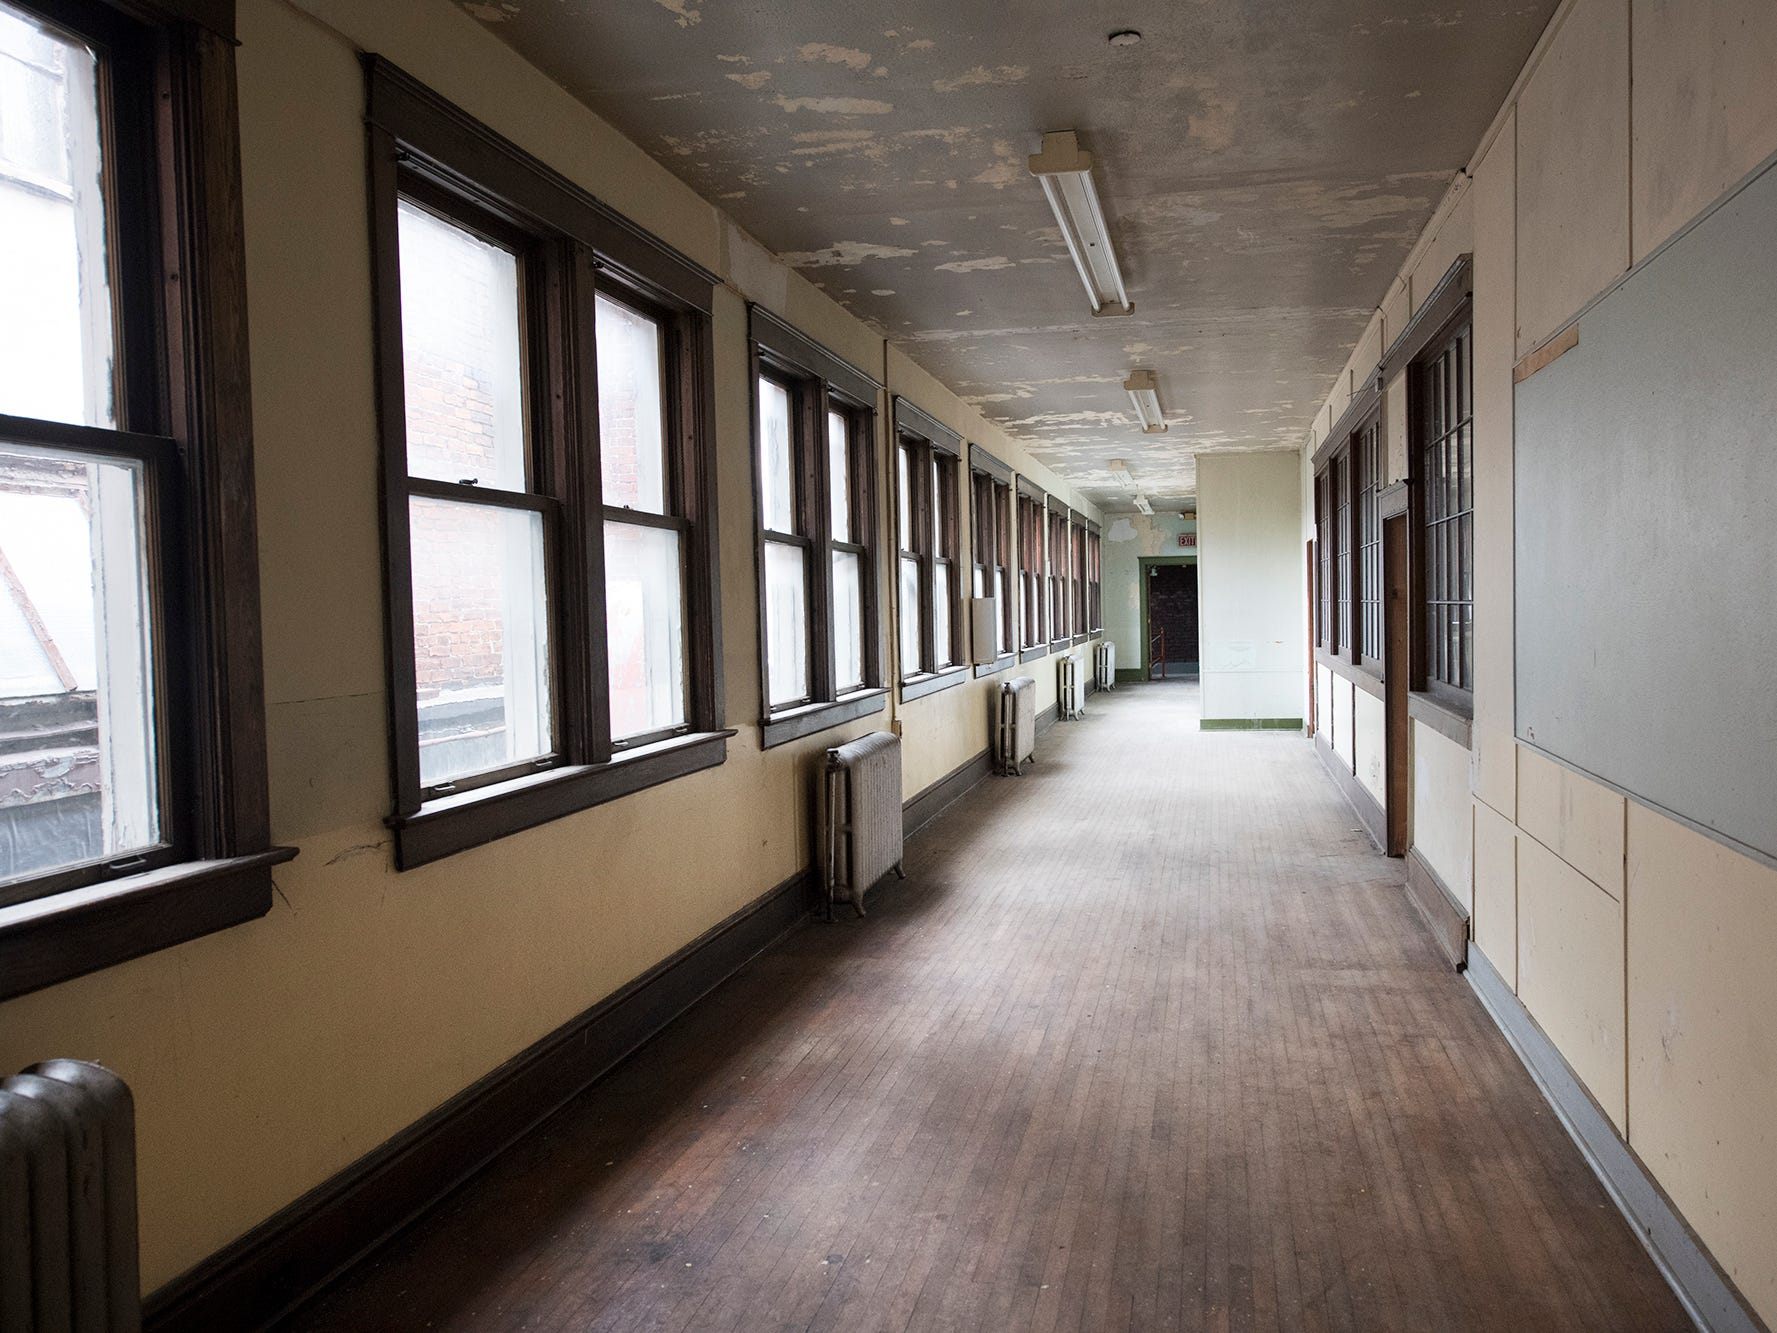 A hallway on the third floor of the  former Cobblestones building runs the length of the building  Wednesday January 9, 2019.